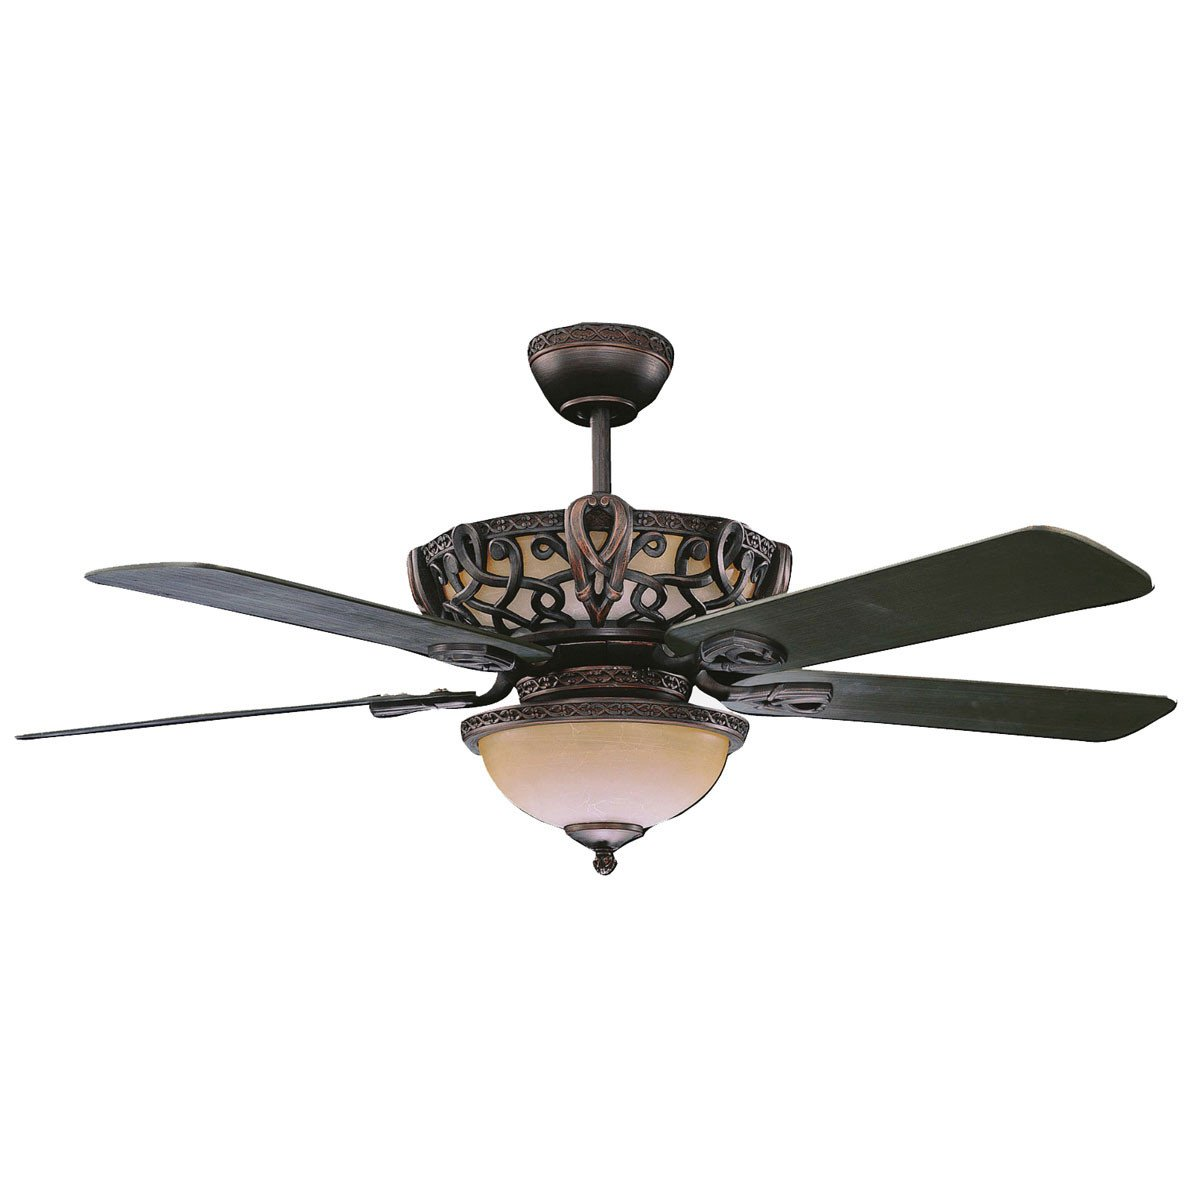 Concord fans 52 aracruz oil rubbed bronze ceiling fan up concord fans 52 aracruz oil rubbed bronze ceiling fan up downlights remote aloadofball Choice Image